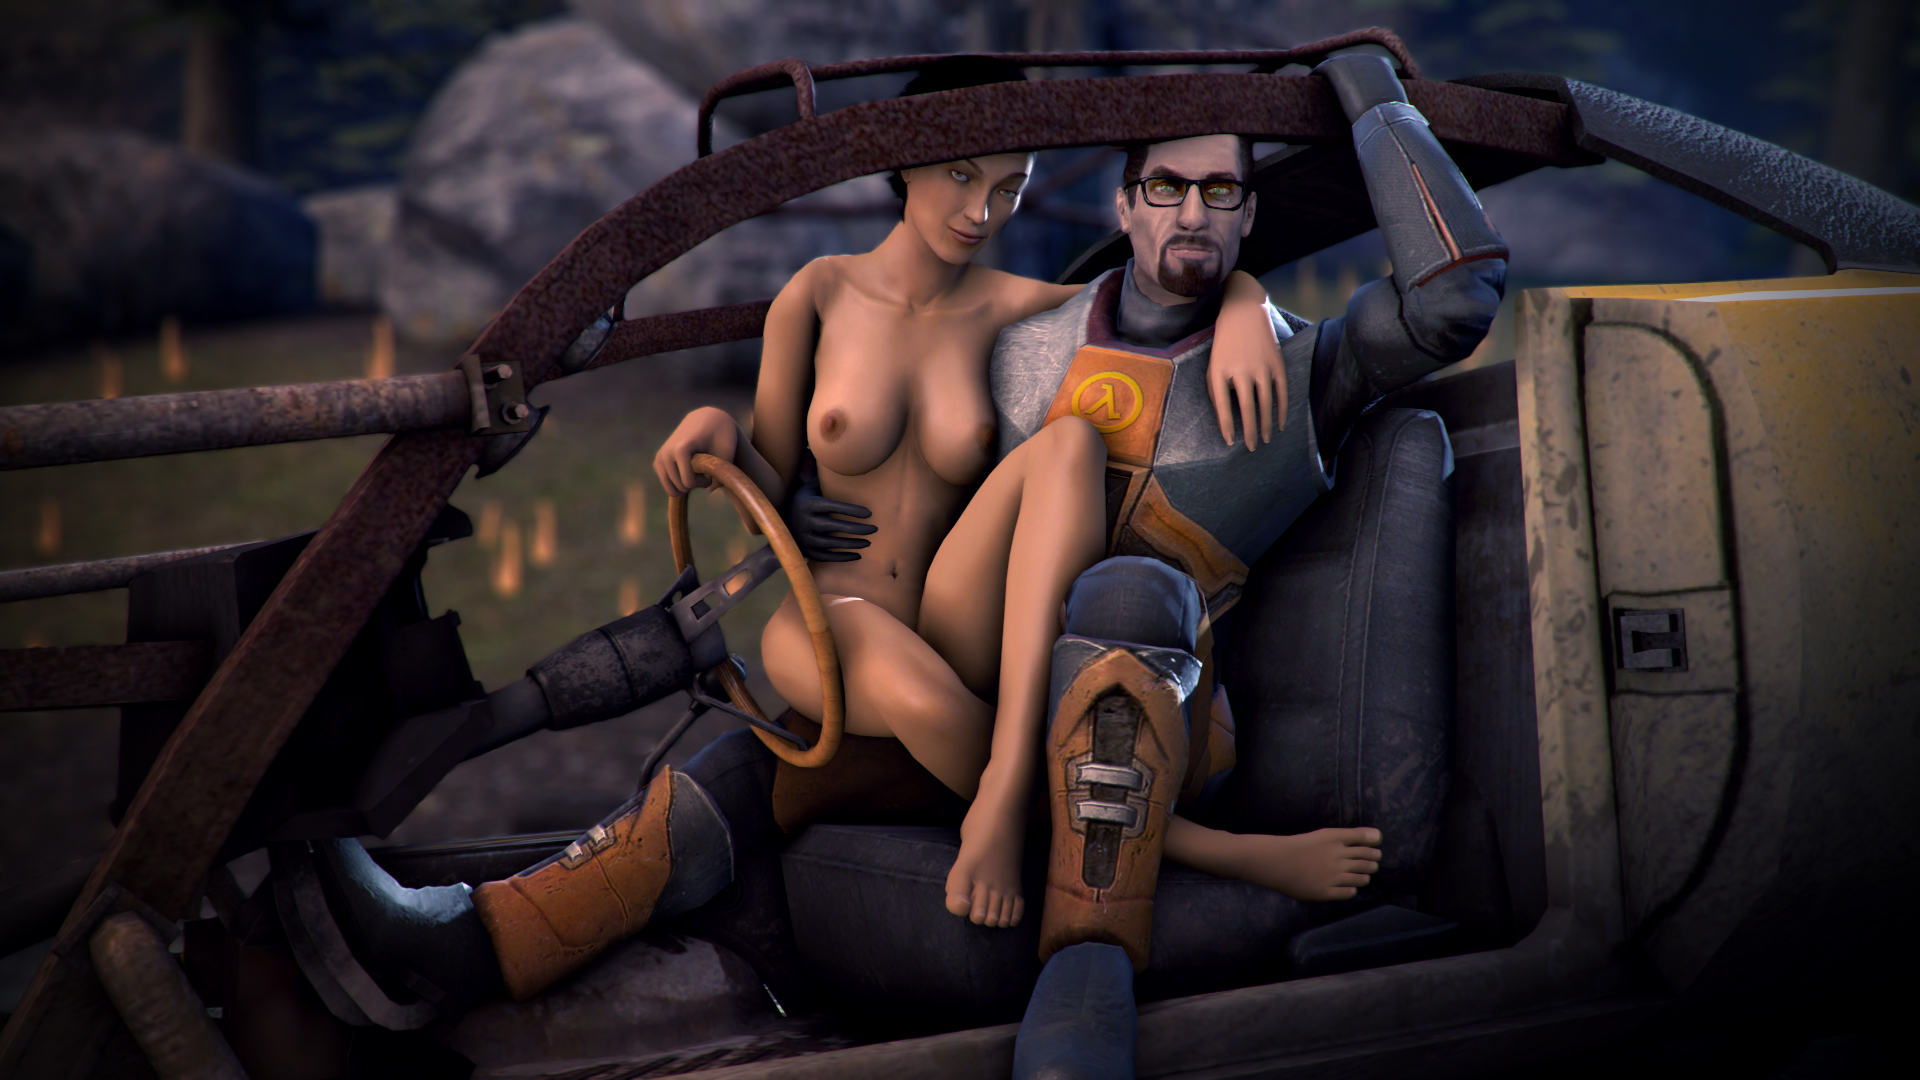 Hl2 alyx hentai exposed pic